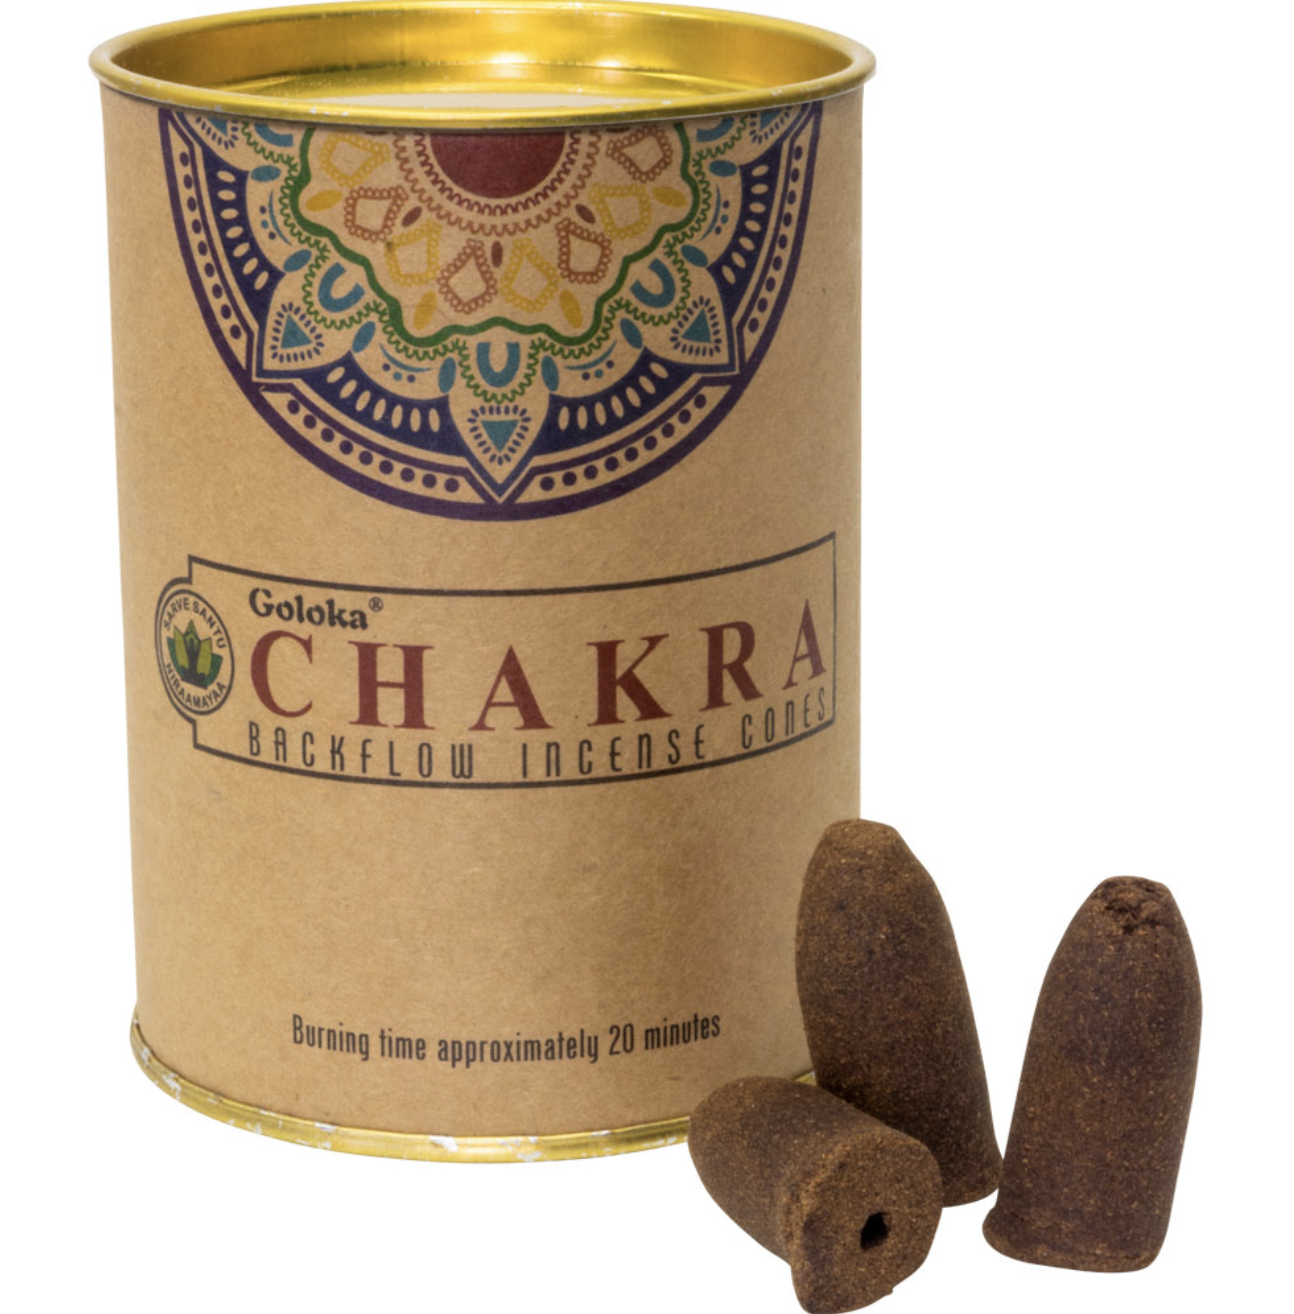 Goloka Chakra Backflow Incense Cones 24ct